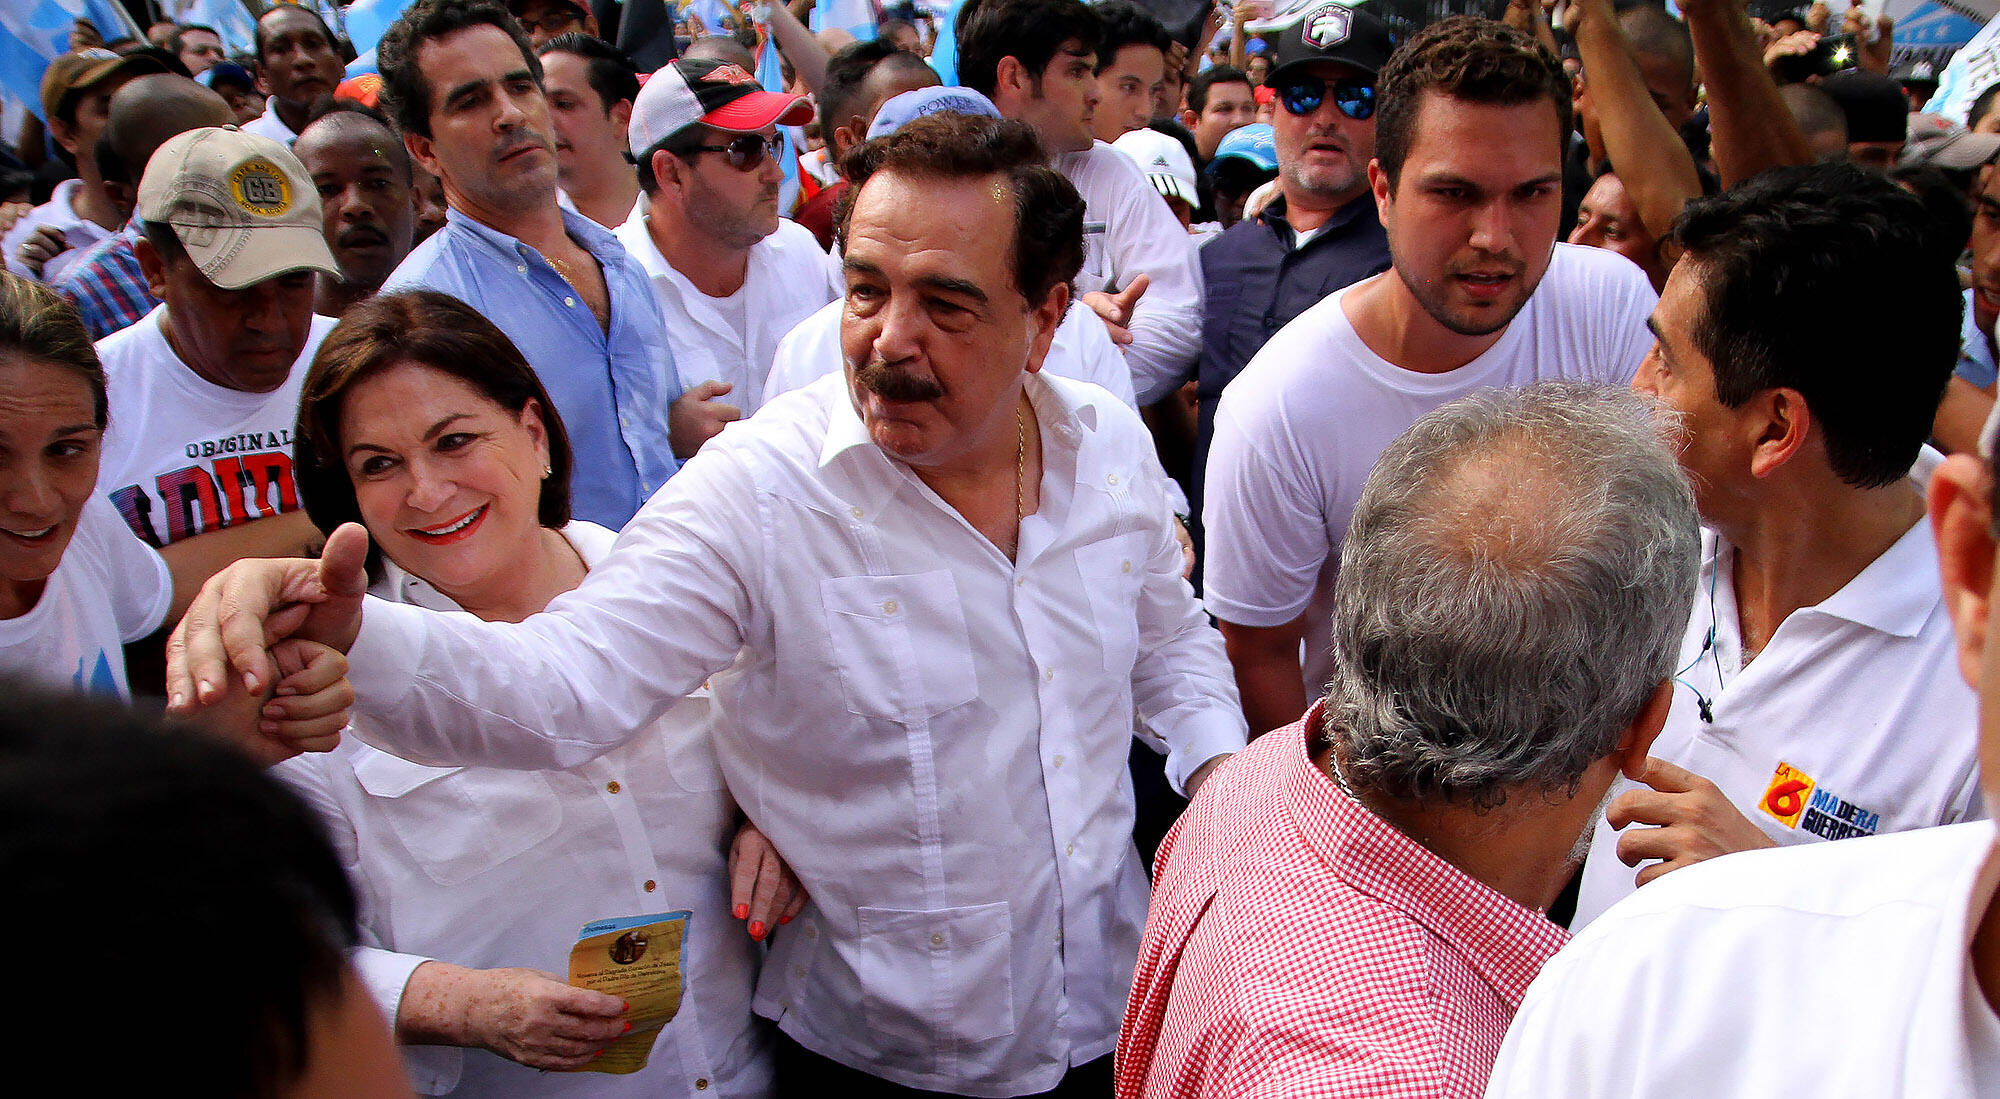 Jaime Nebot, mayor of Guayaquil, leads a crowd protesting against the policies of the Correa government, 2015. (Photo by César Muñoz/Andes.)